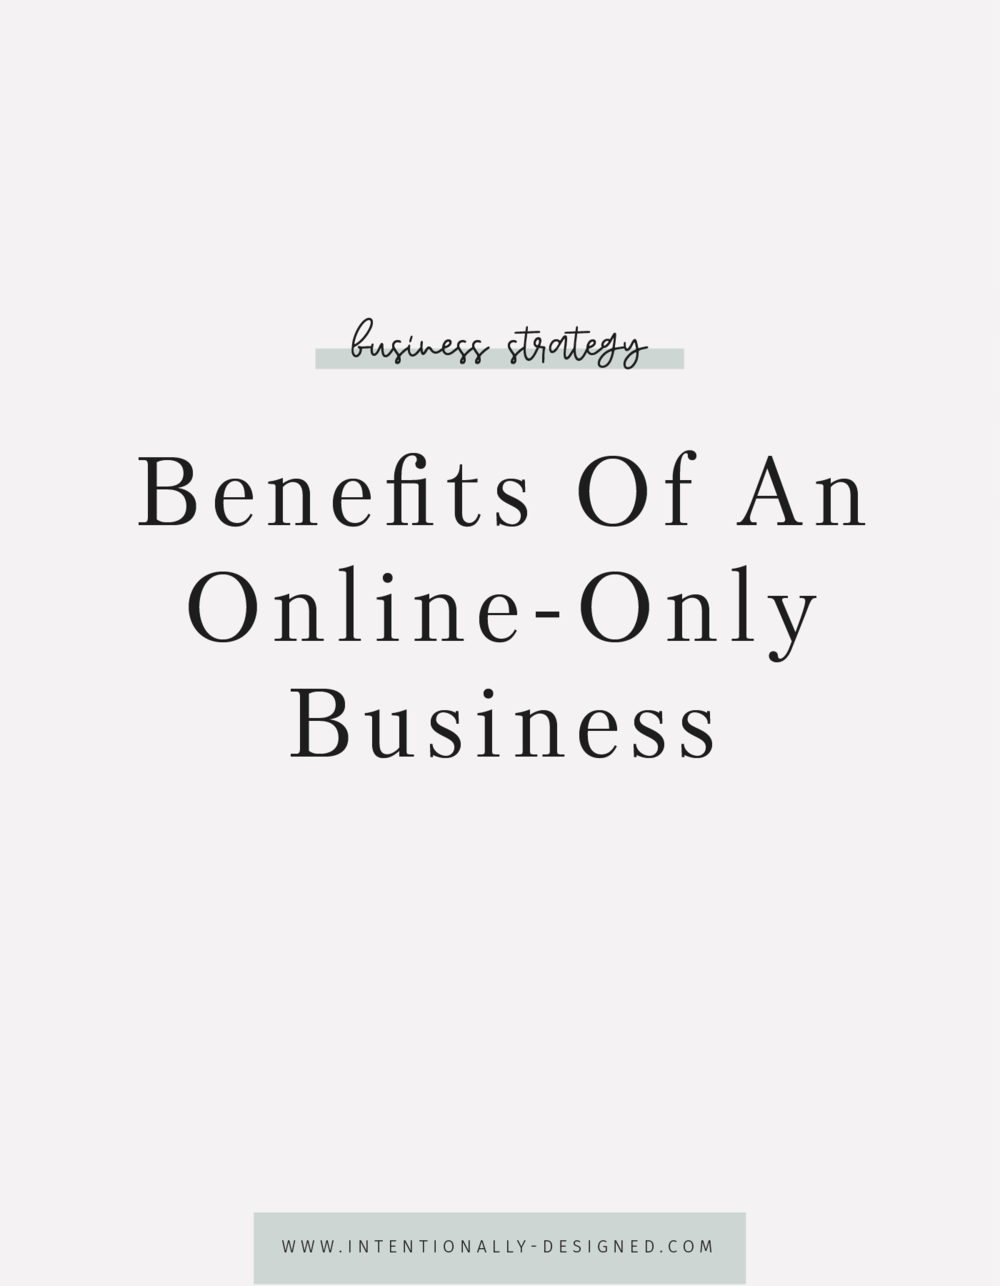 Benefits Of An Online-Only Business